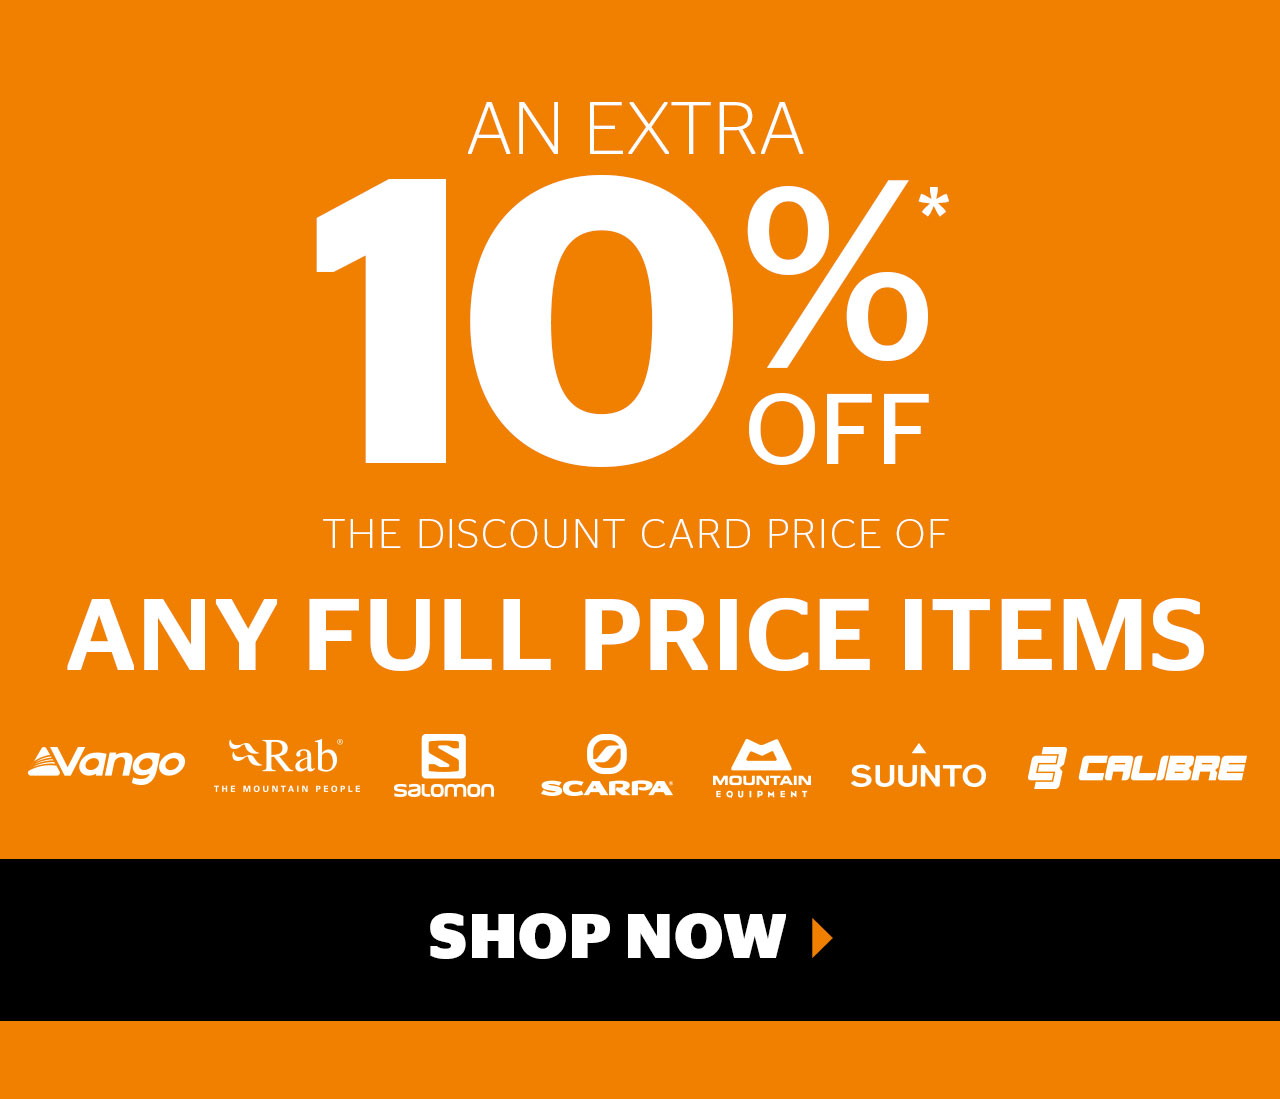 An extra 10% off the Discount Card price of any full price items